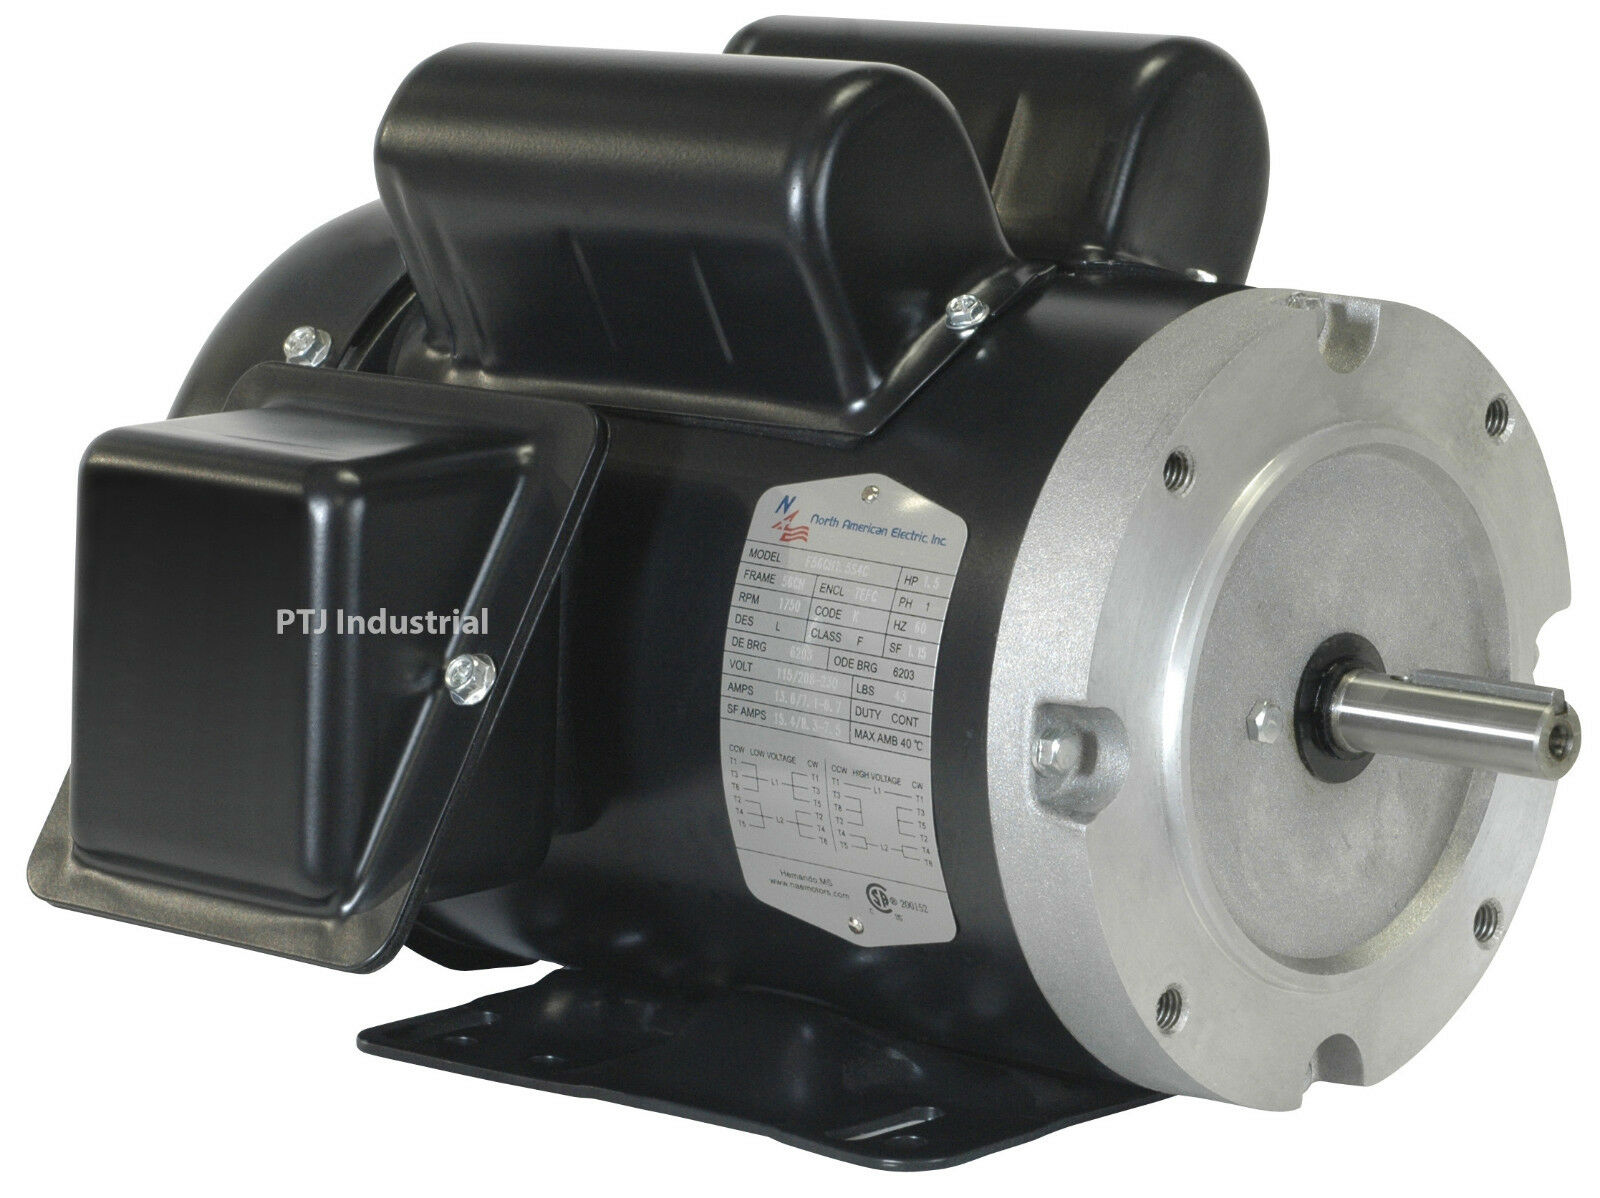 1 5 Hp Electric Motor 3600 56c 1 Phase 115 230 Volt Tefc 2 Year Warranty New Picclick